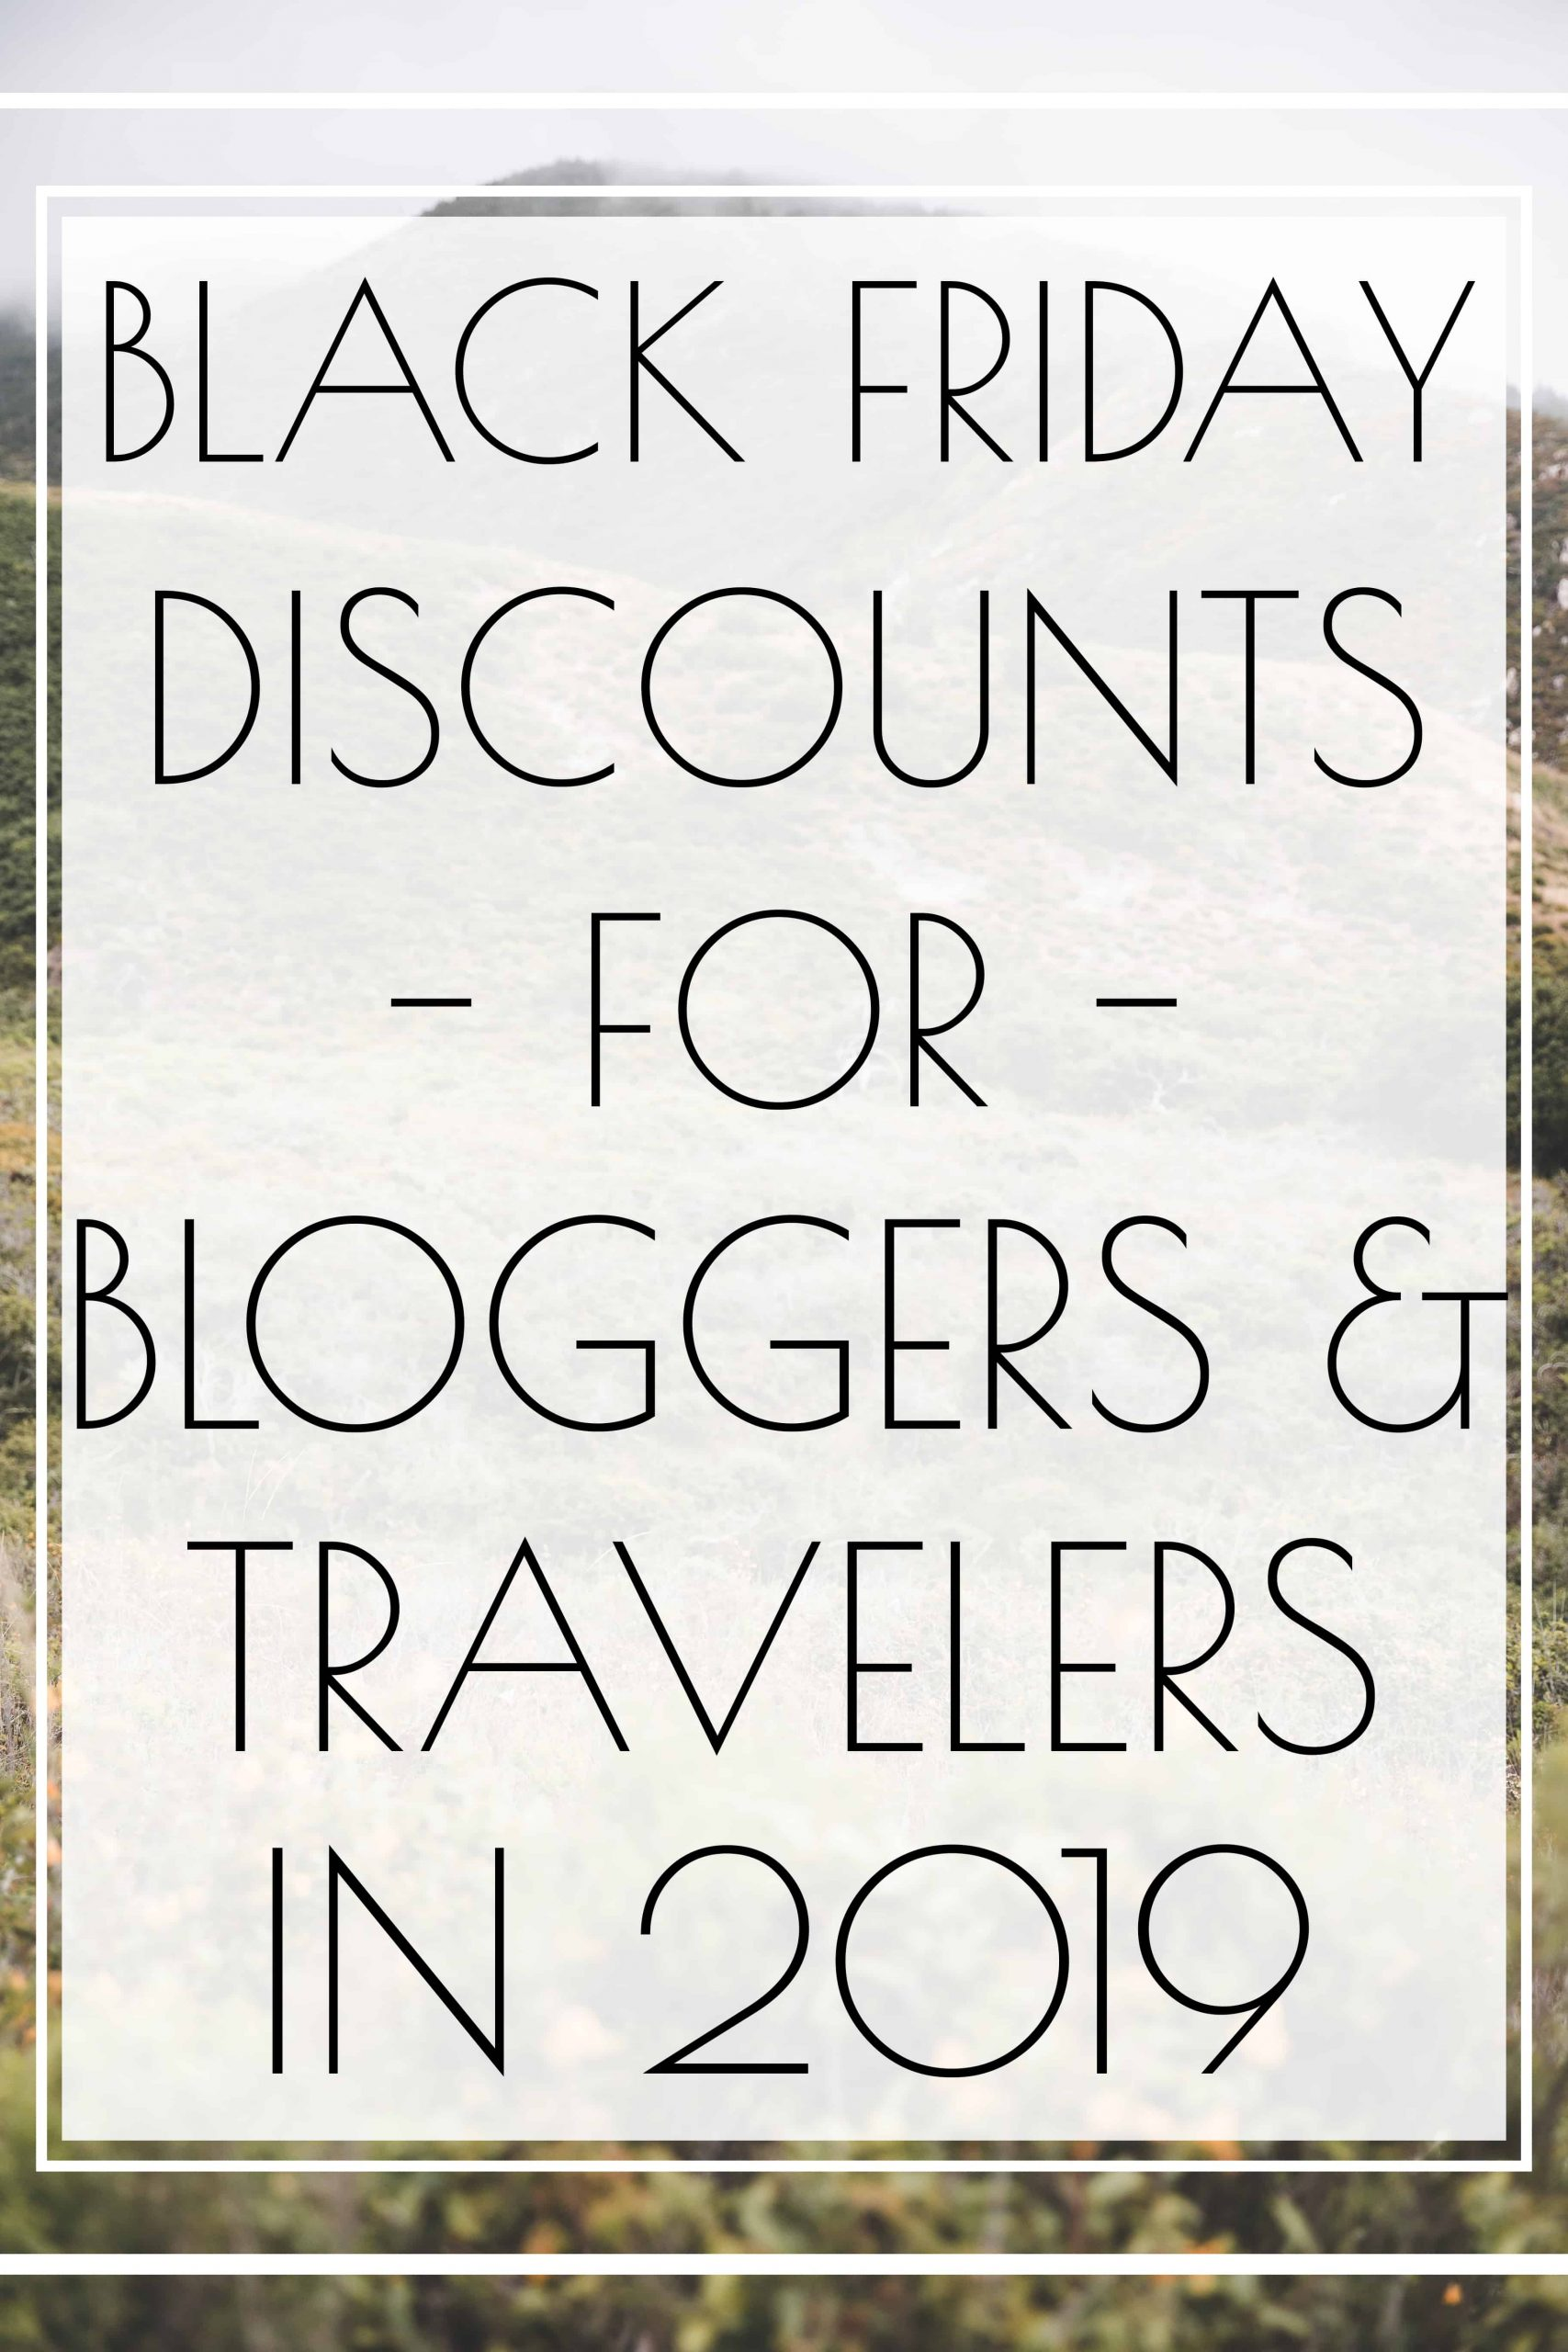 Black Friday deals for bloggers and travelers!